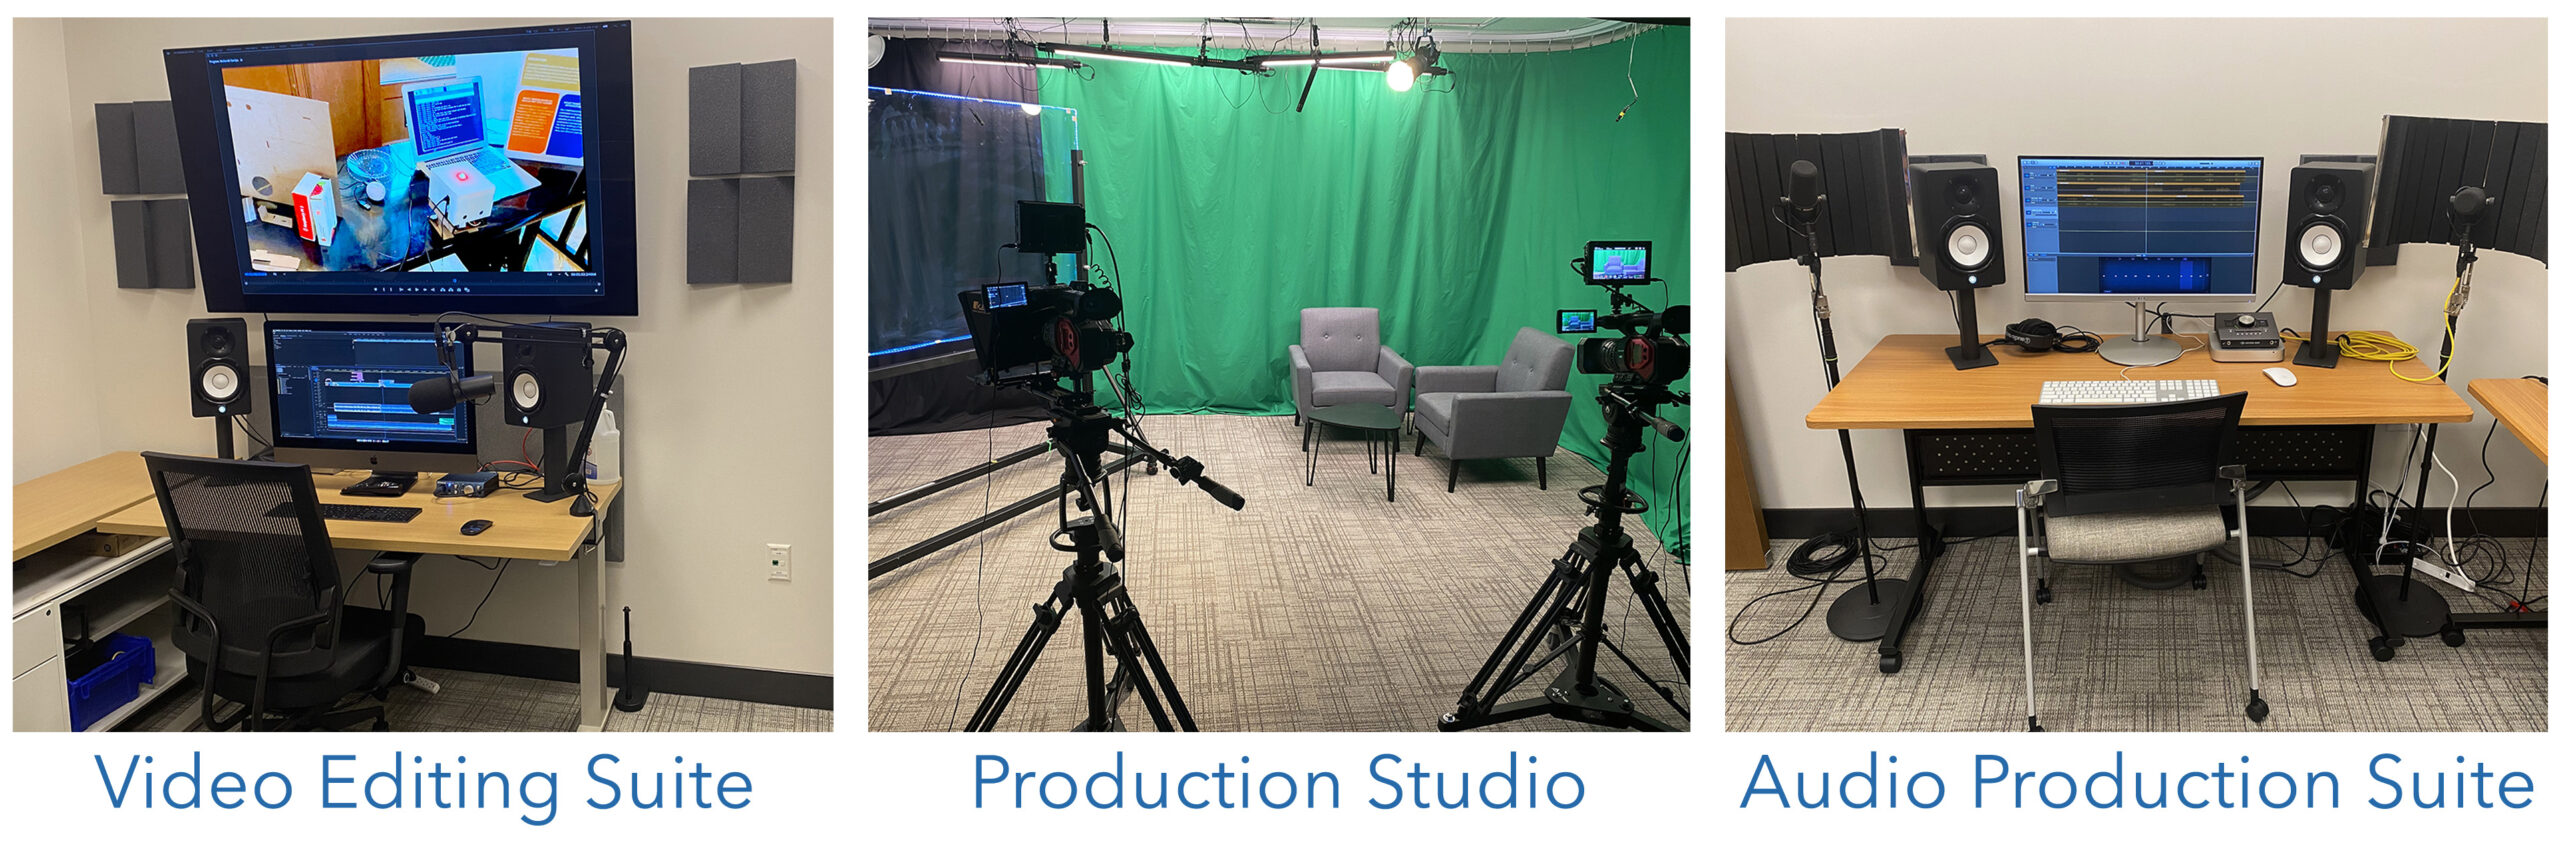 Photo of the video editing suite, production studio an audio station